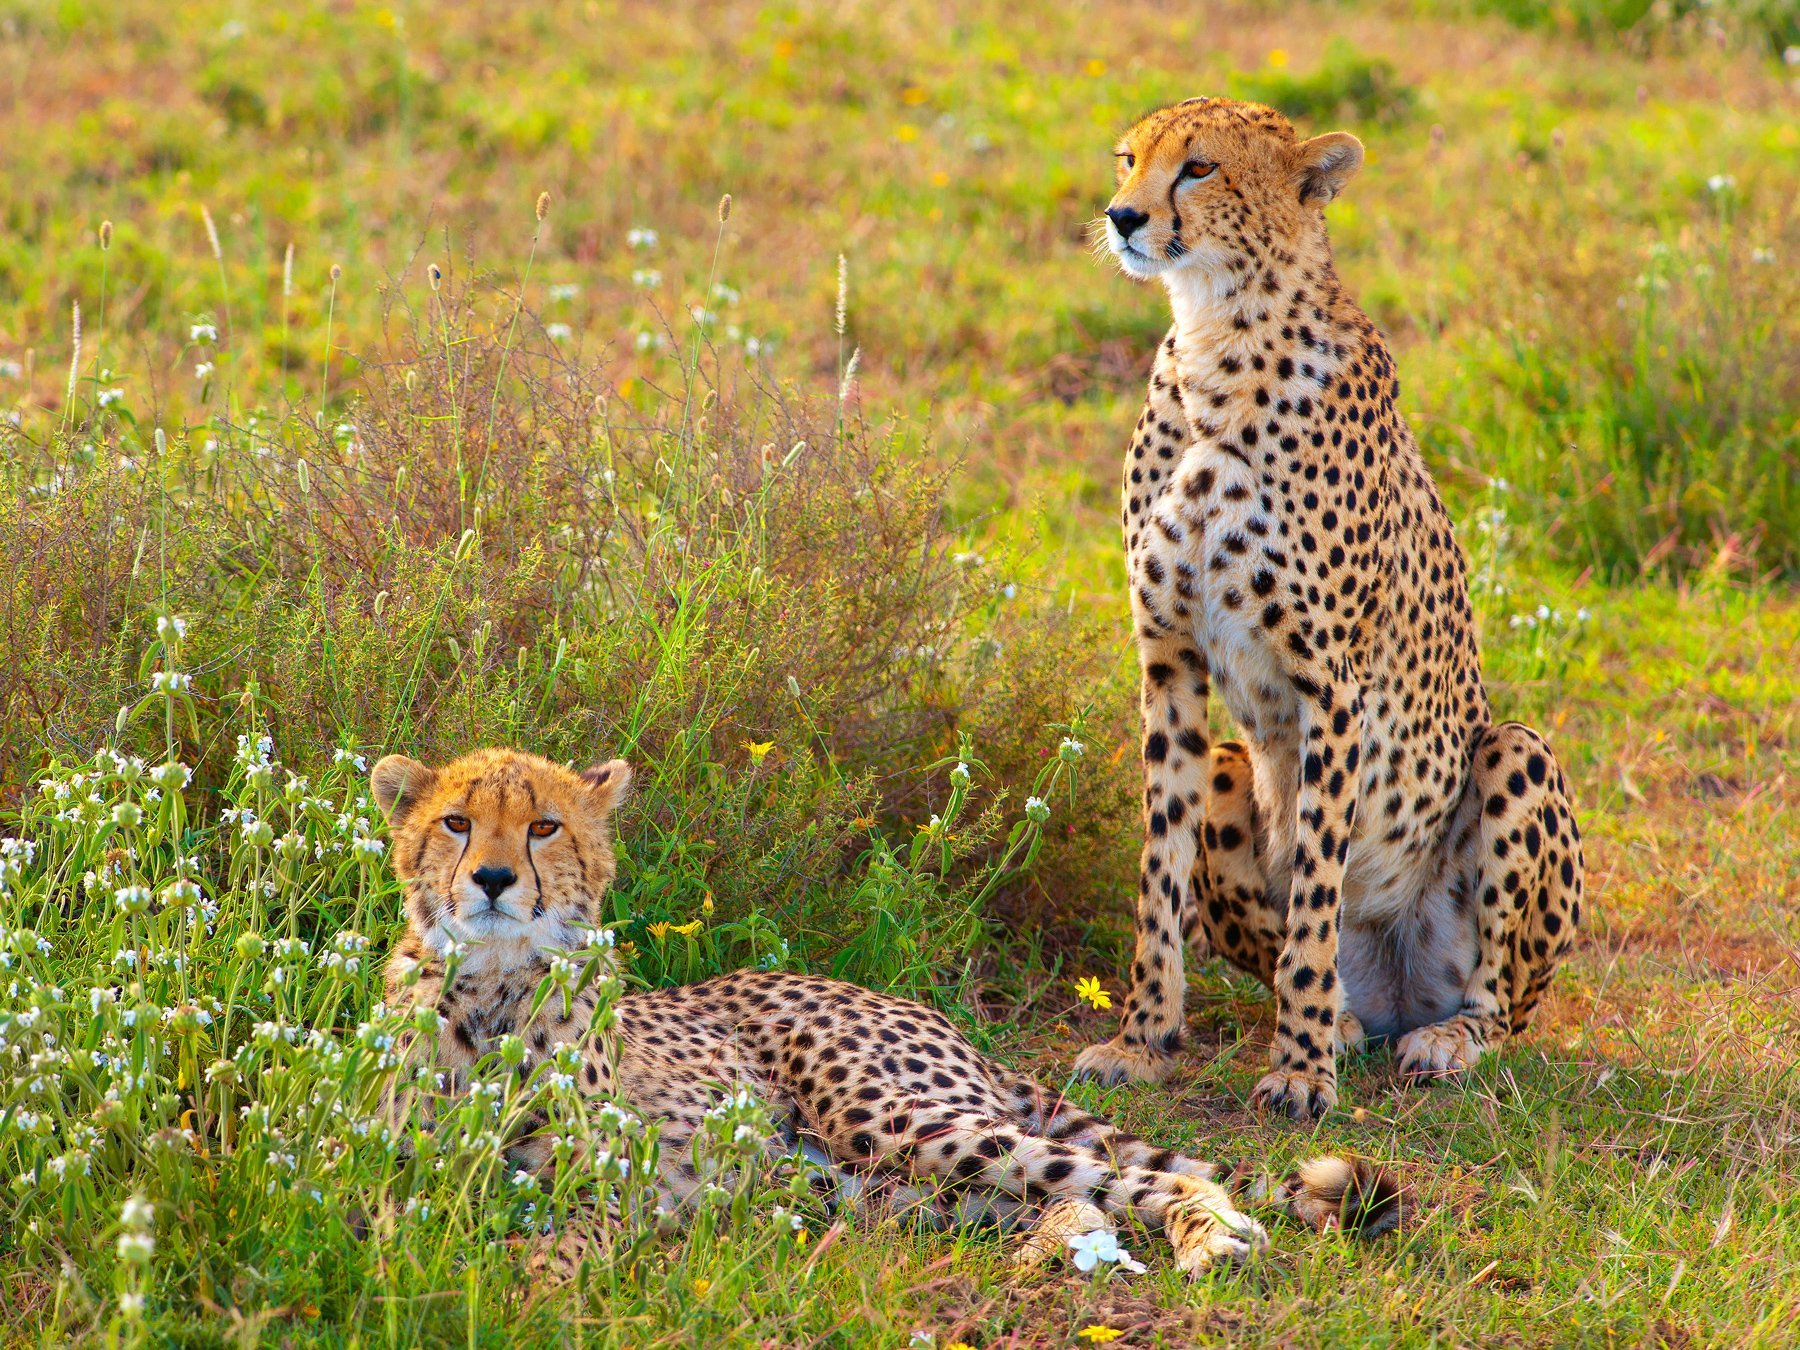 Two cheetahs resting yet still watchful, Serengeti, Tanzania, Africa.